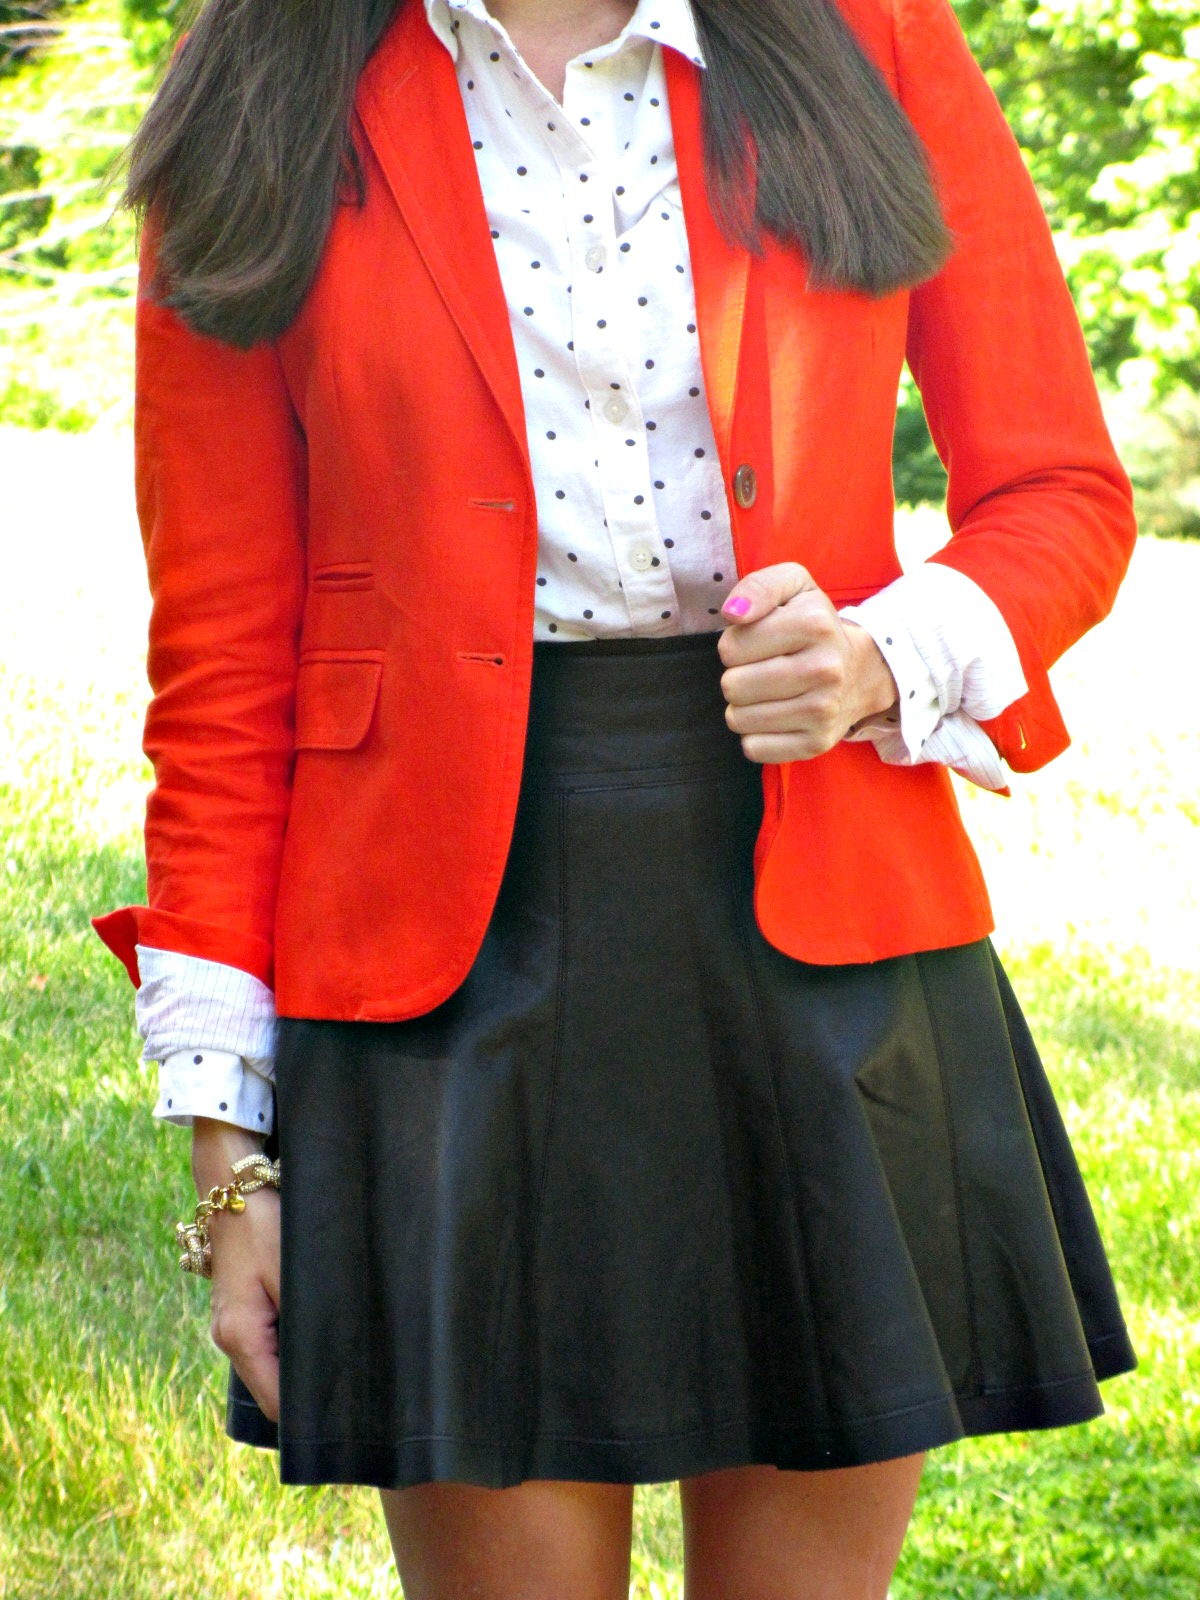 J.Crew Schoolboy Blazer, Urban Outfitters Leather Skirt